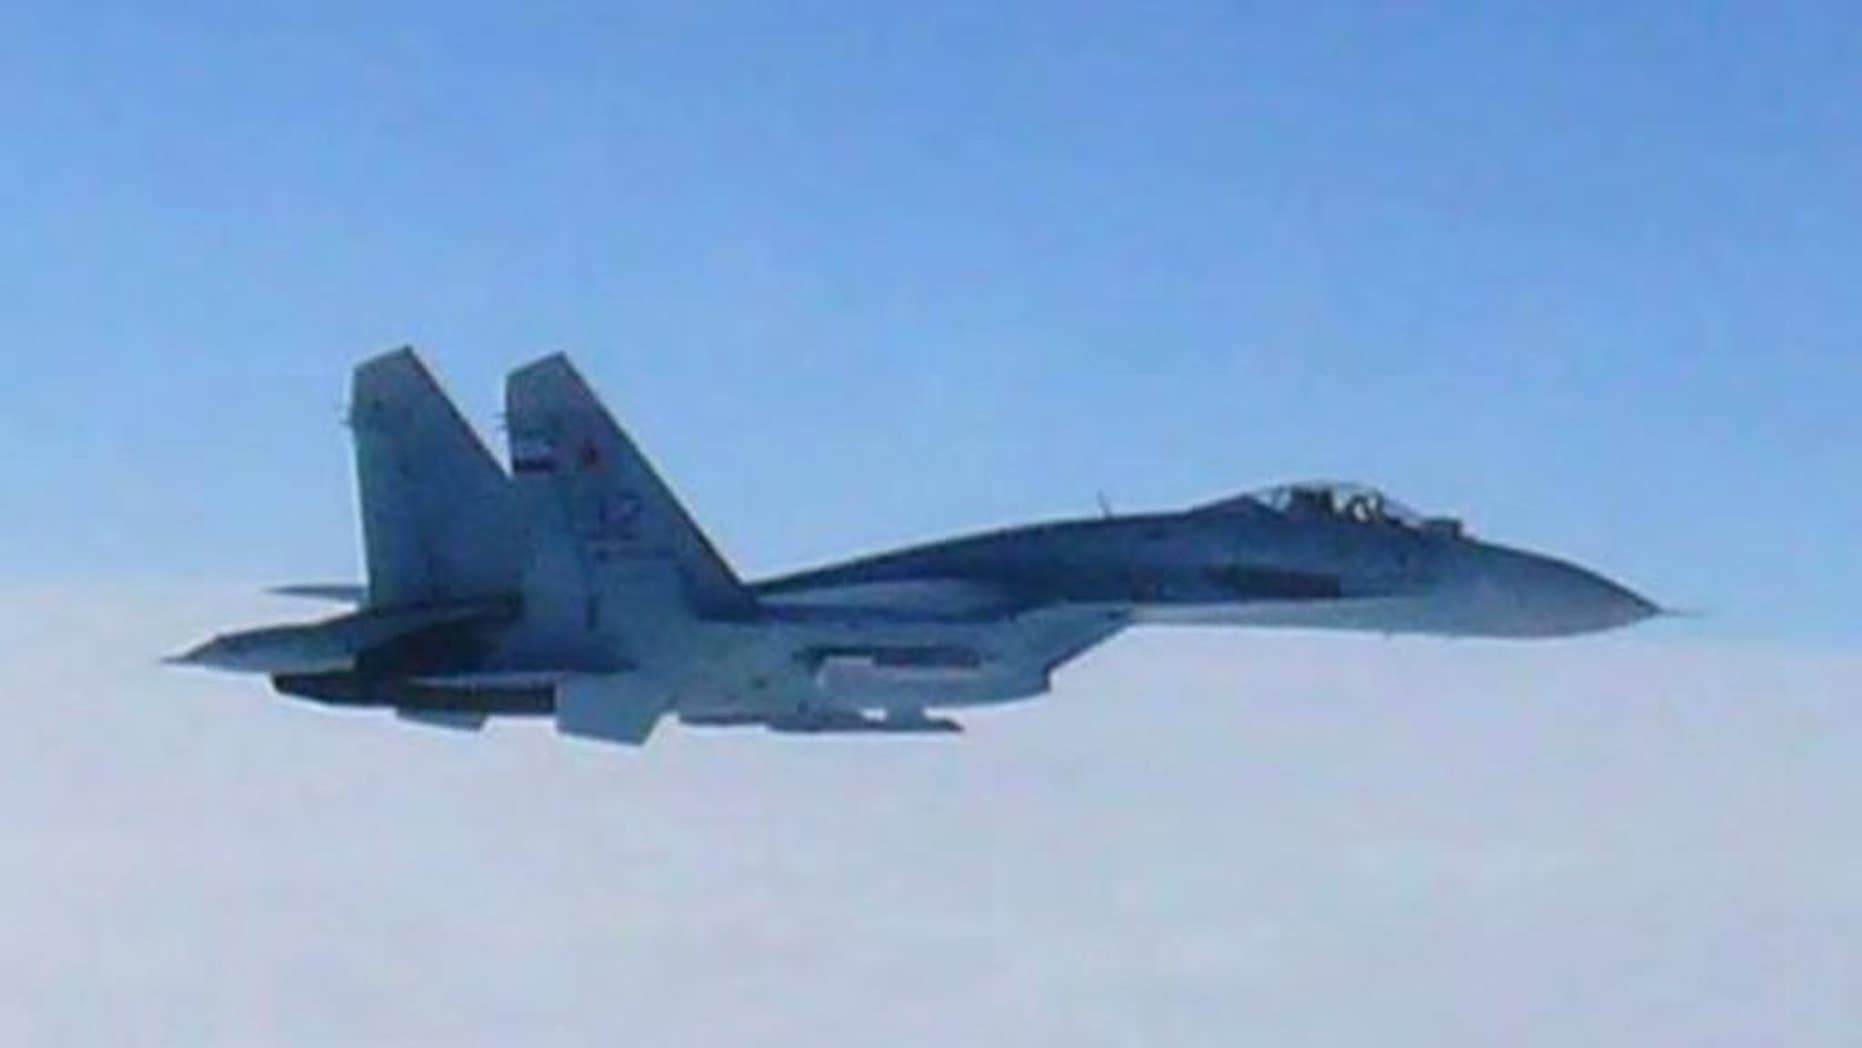 FILE - In this Feb. 7, 2013 file photo taken by Japan Air Self-Defense Force and released by the Joint Staff Office of the Defense Ministry of Japan, Russian fighter jet SU-27 flies over the sea off the Japanese island of Hokkaido when the Defense Ministry said two SU-27 jets, including the one shown in this photo, briefly intruded into Japanese airspace in the afternoon off the coast of Rishiri island on Hokkaido's west coast, prompting Japan's air force to scramble jets. Japan's government said Wednesday, April 15, 2015 that the number of scrambles by the country's warplanes has surged in recent years to levels nearly matching the Cold War era amid growing activity by China and Russia in the region. (The Joint Staff Office of the Defense Ministry of Japan via AP, File)